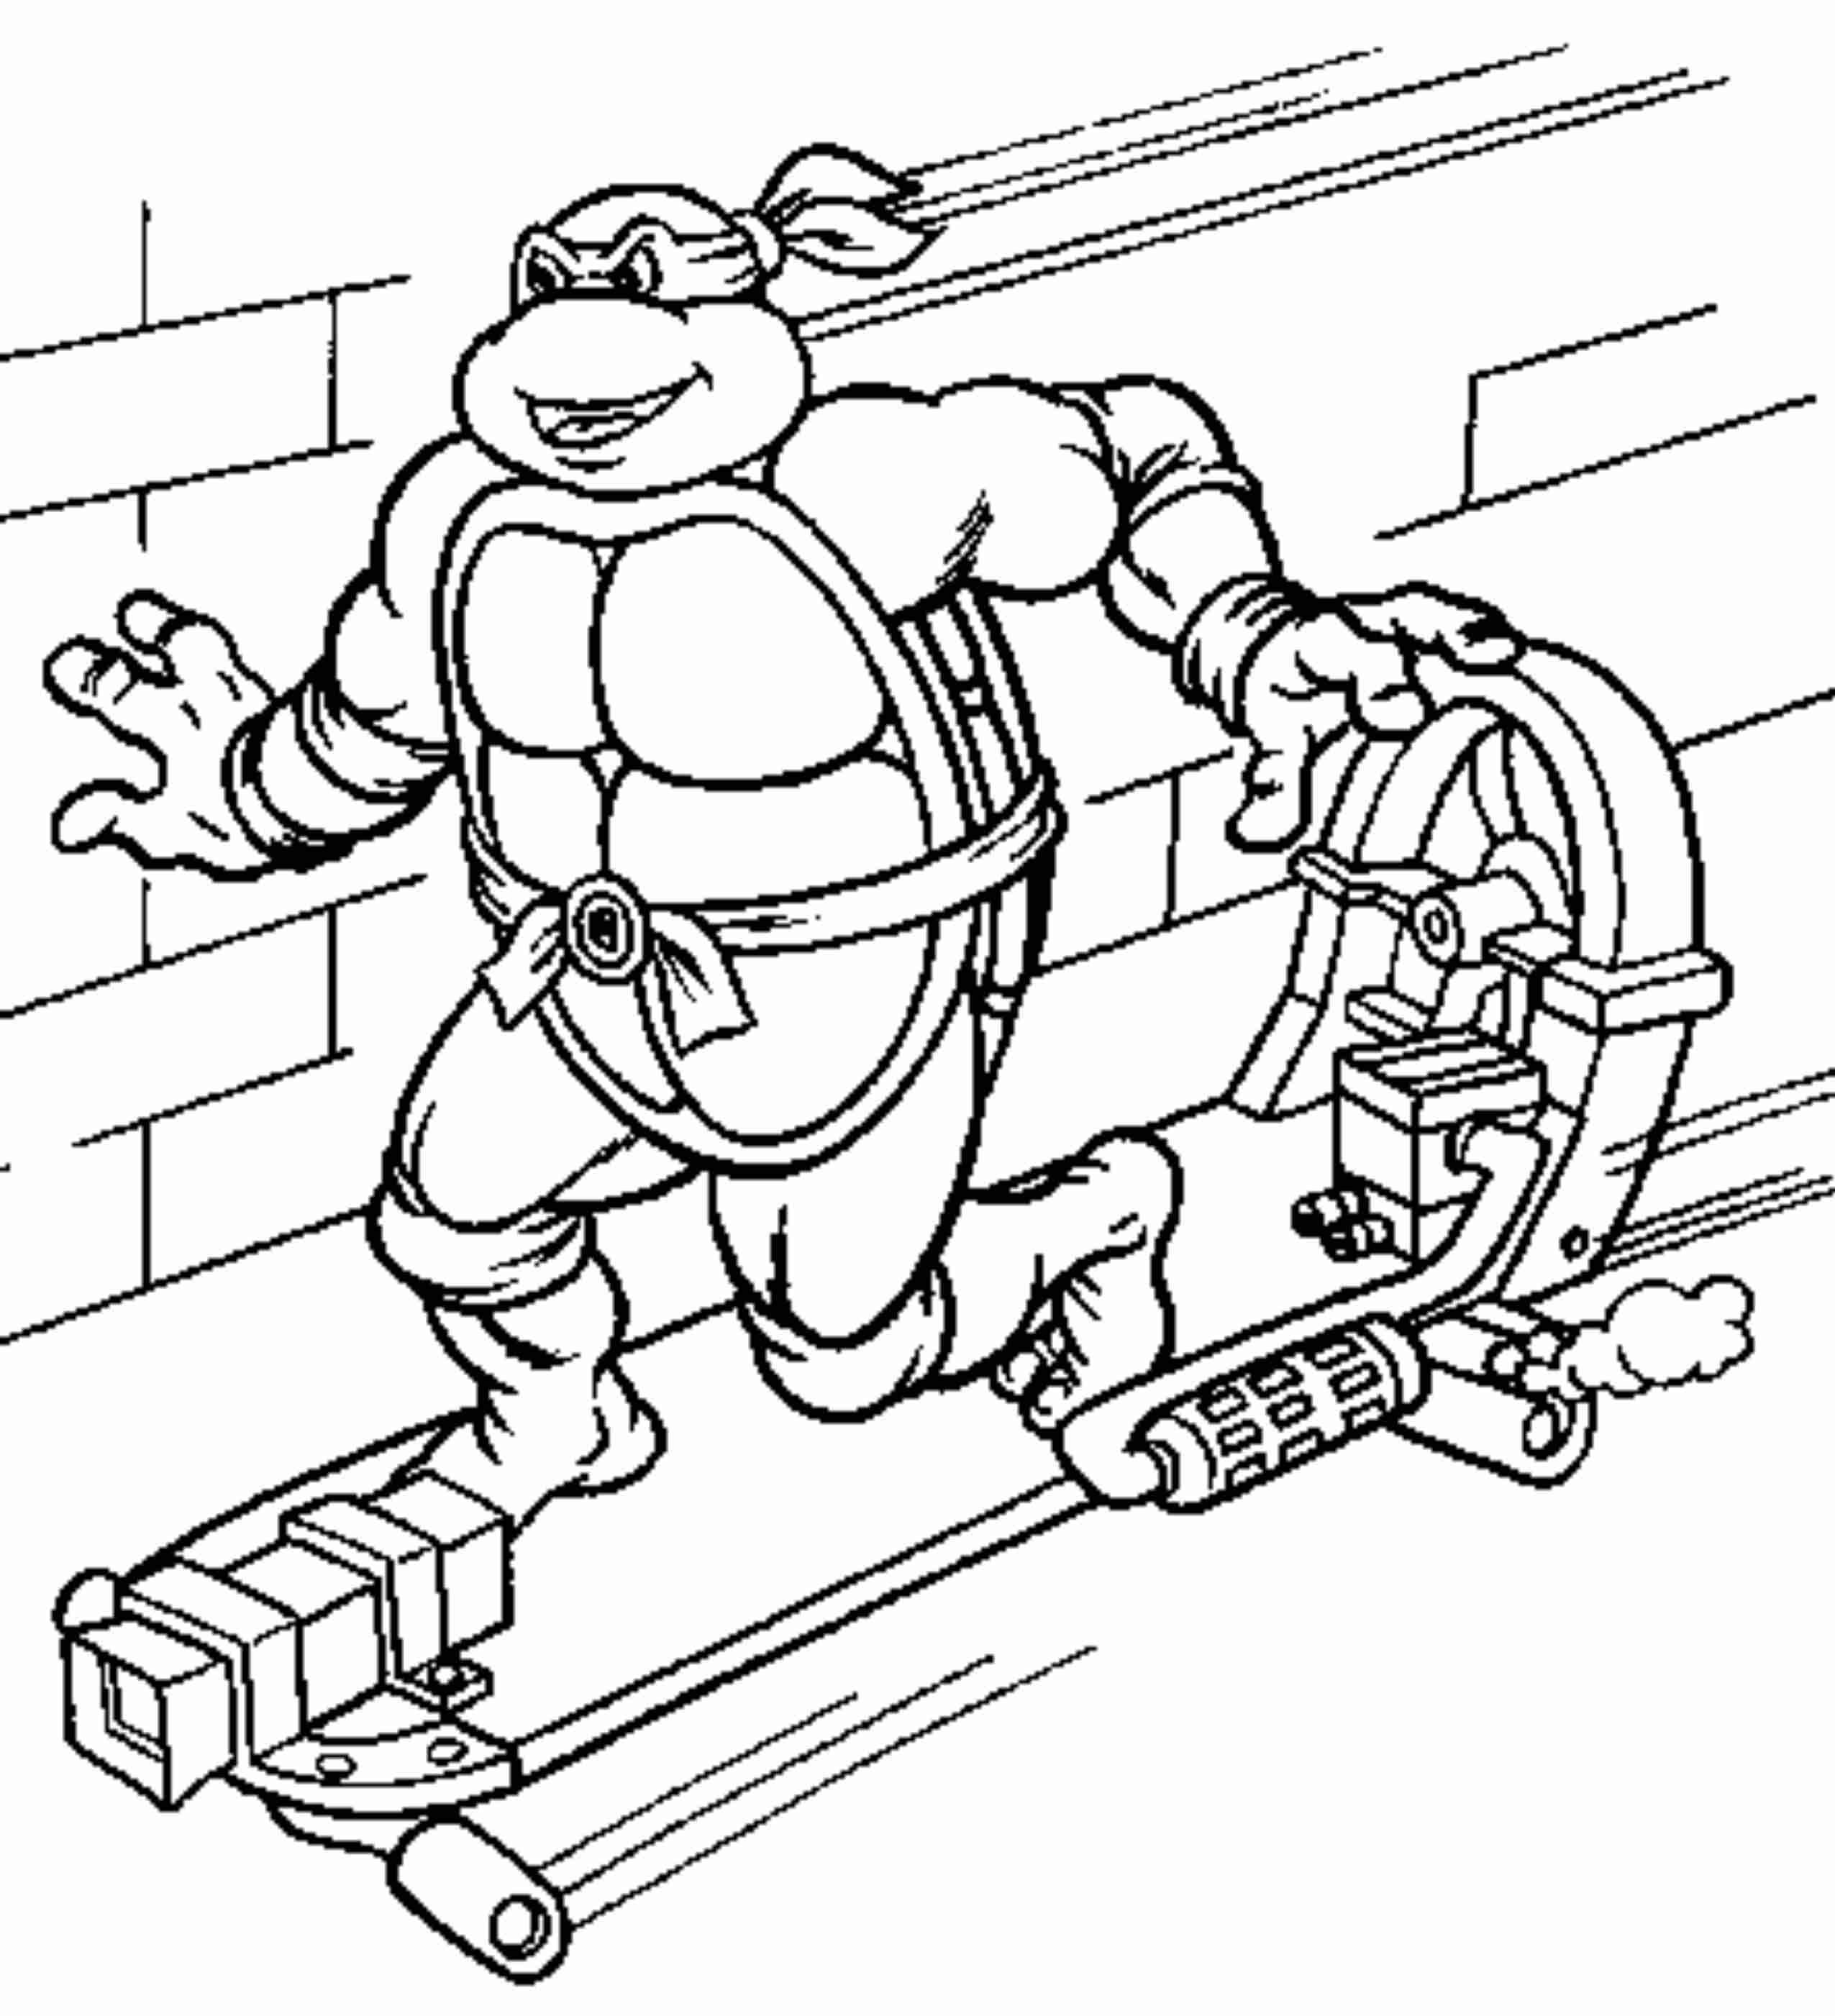 coloring pages turtles ninja songs - photo#38